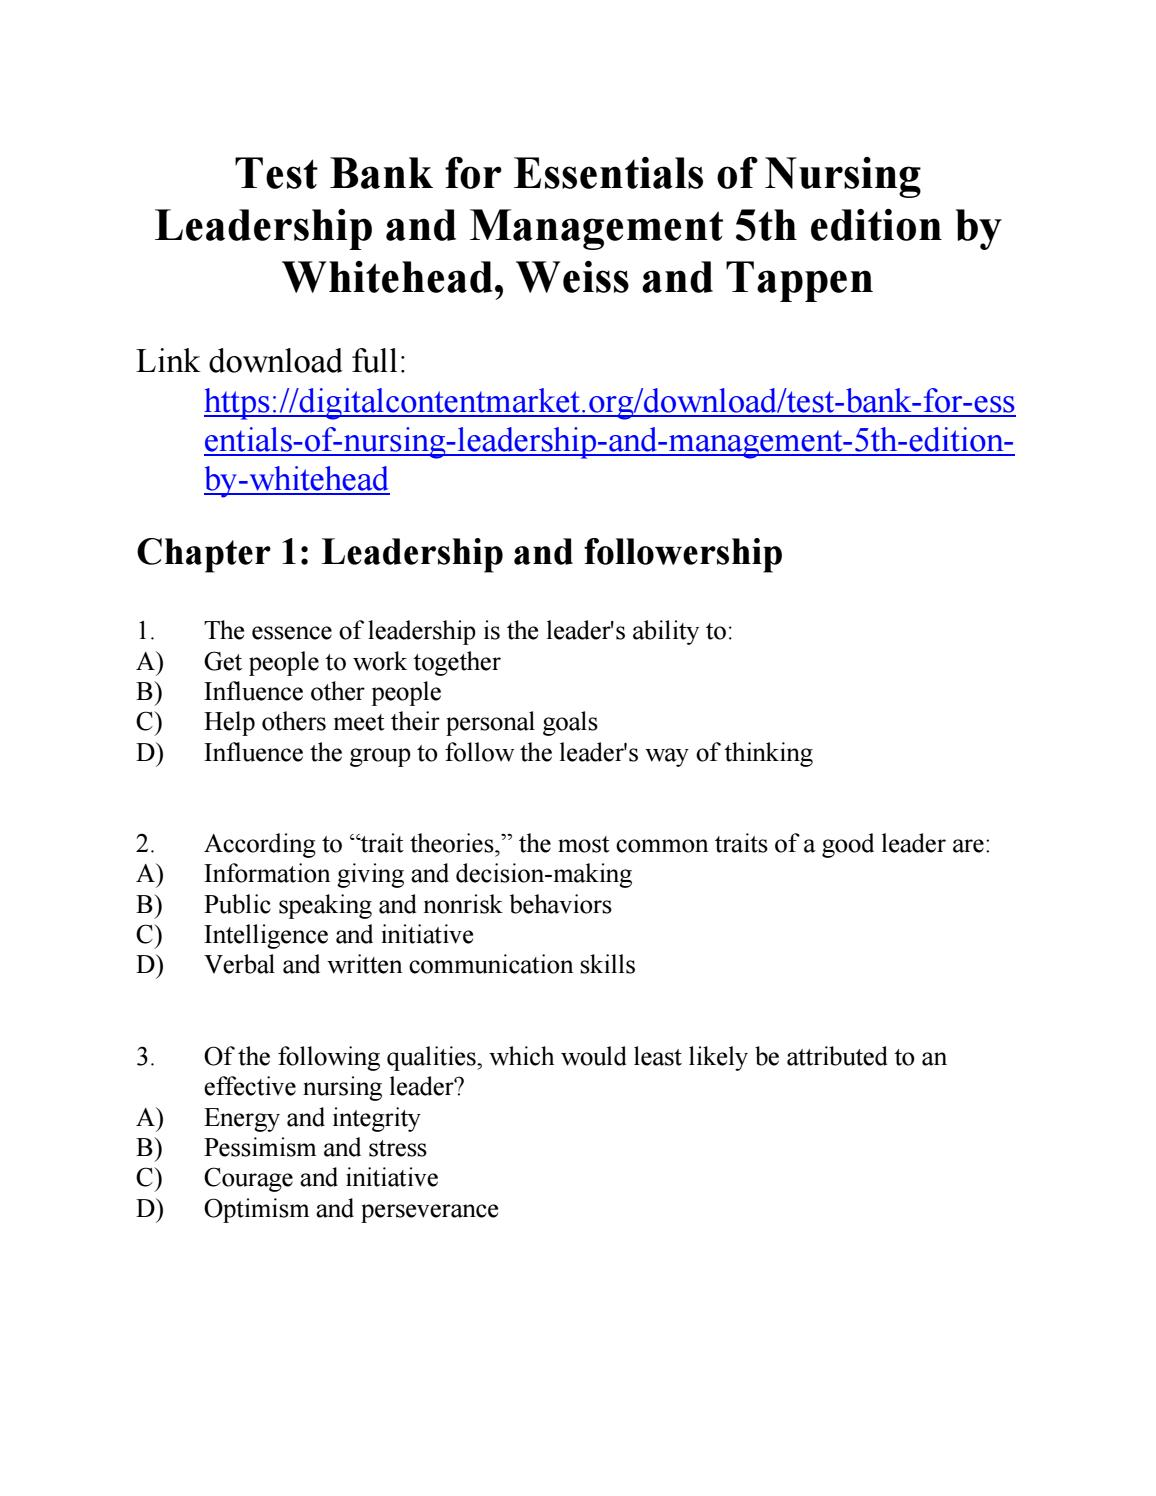 Test bank for essentials of nursing leadership and